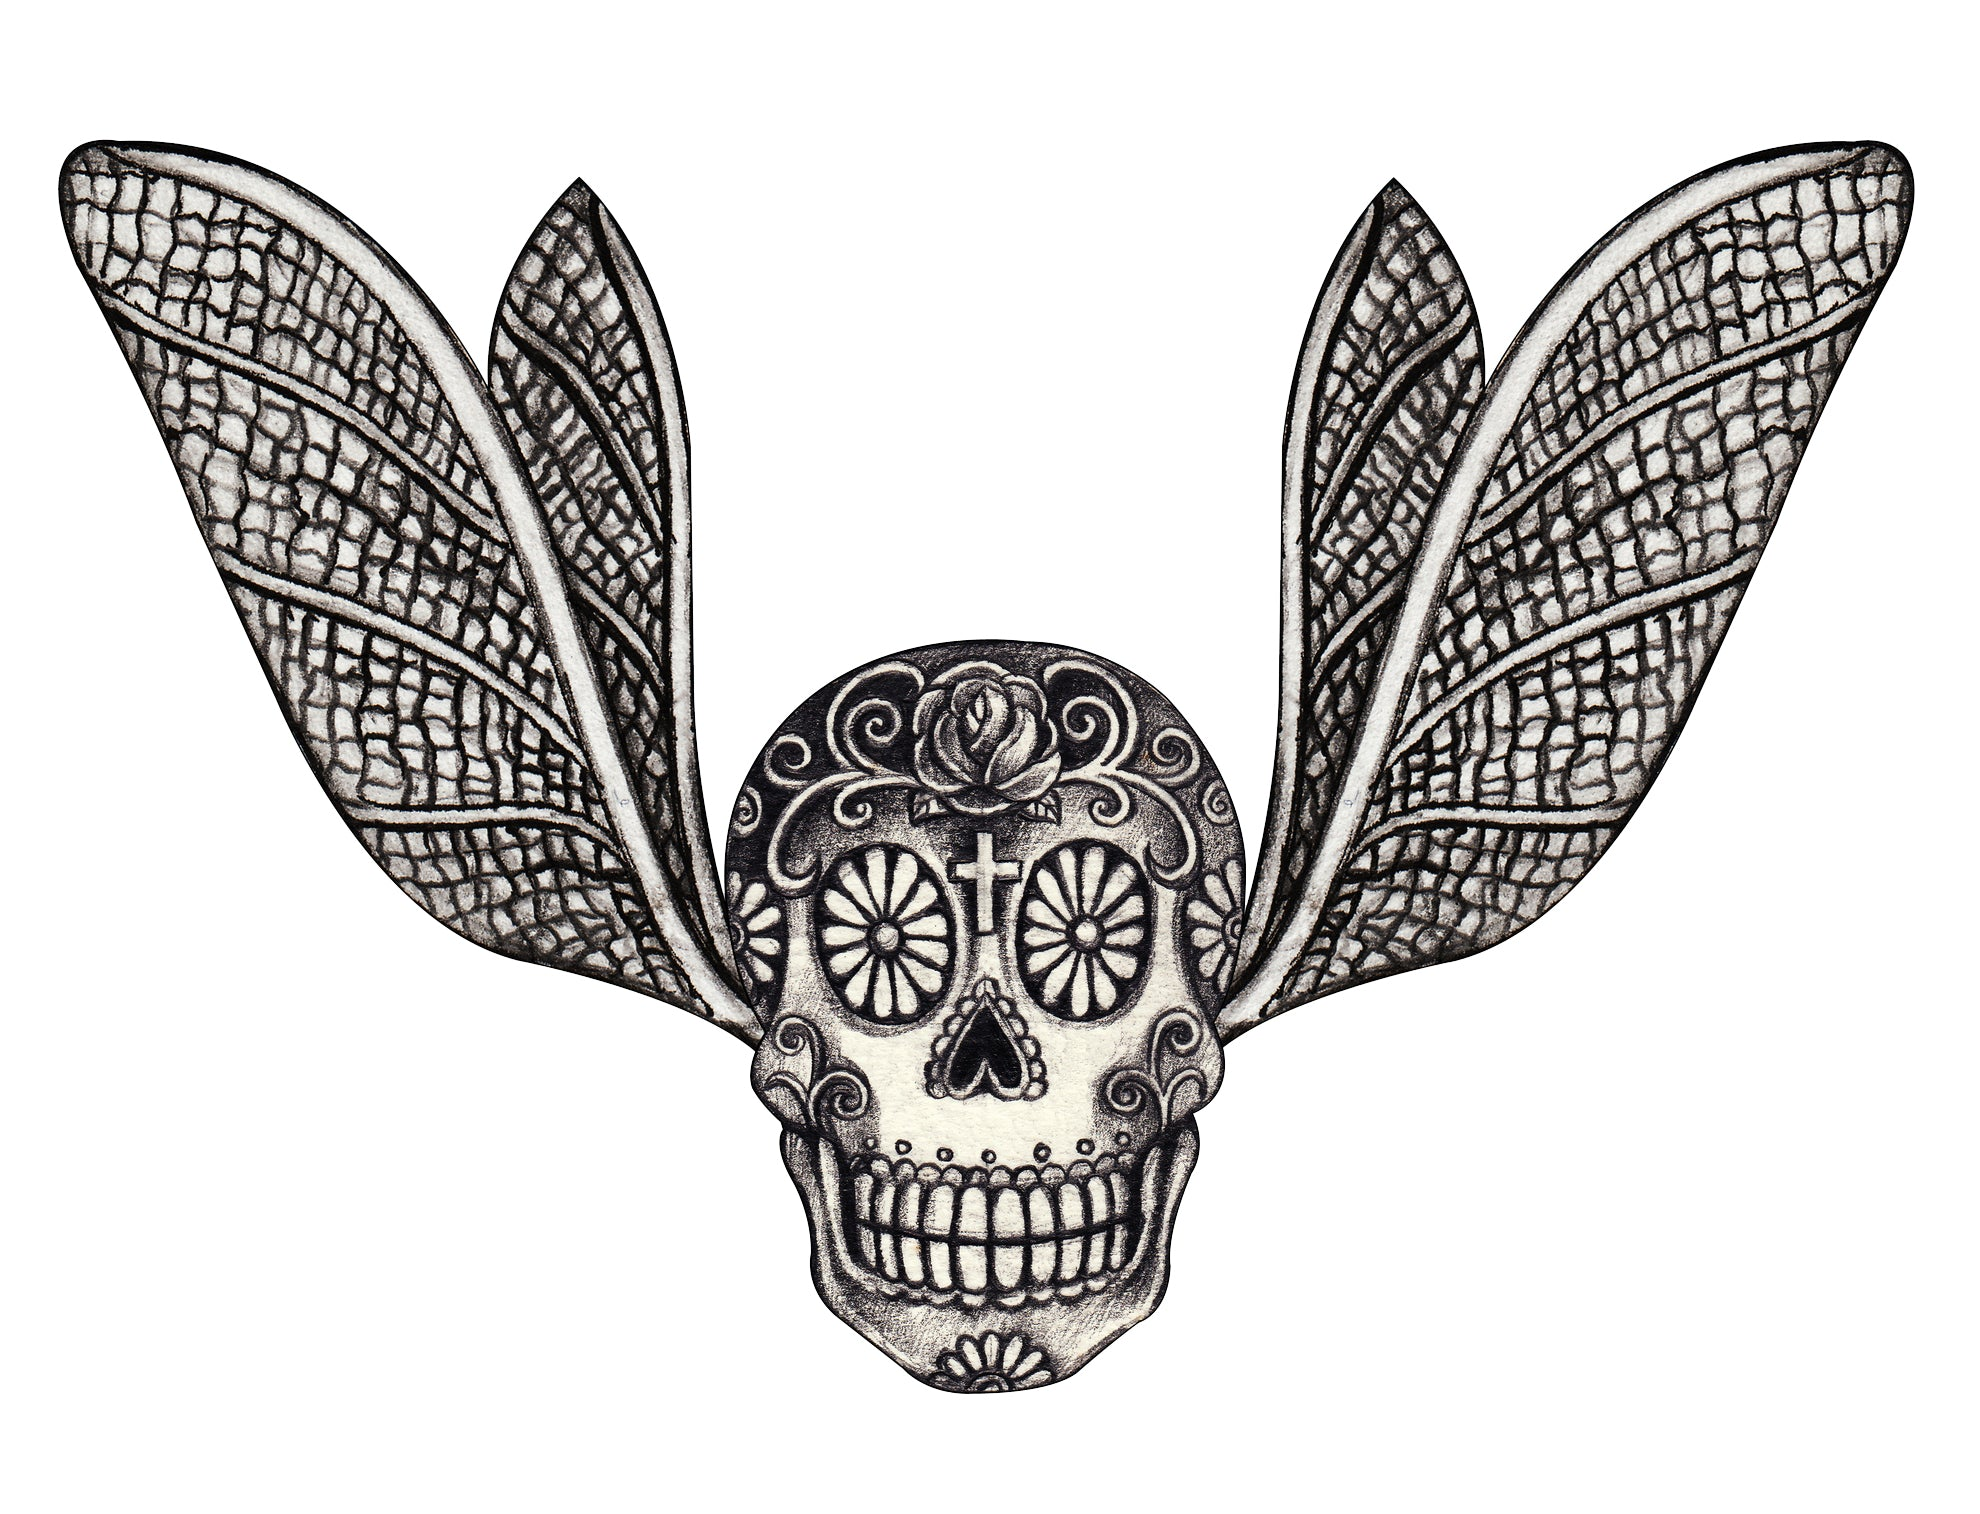 Pencil Sketch Dia de los Muertos Skull with Moth Wings Vinyl Decal Sticker